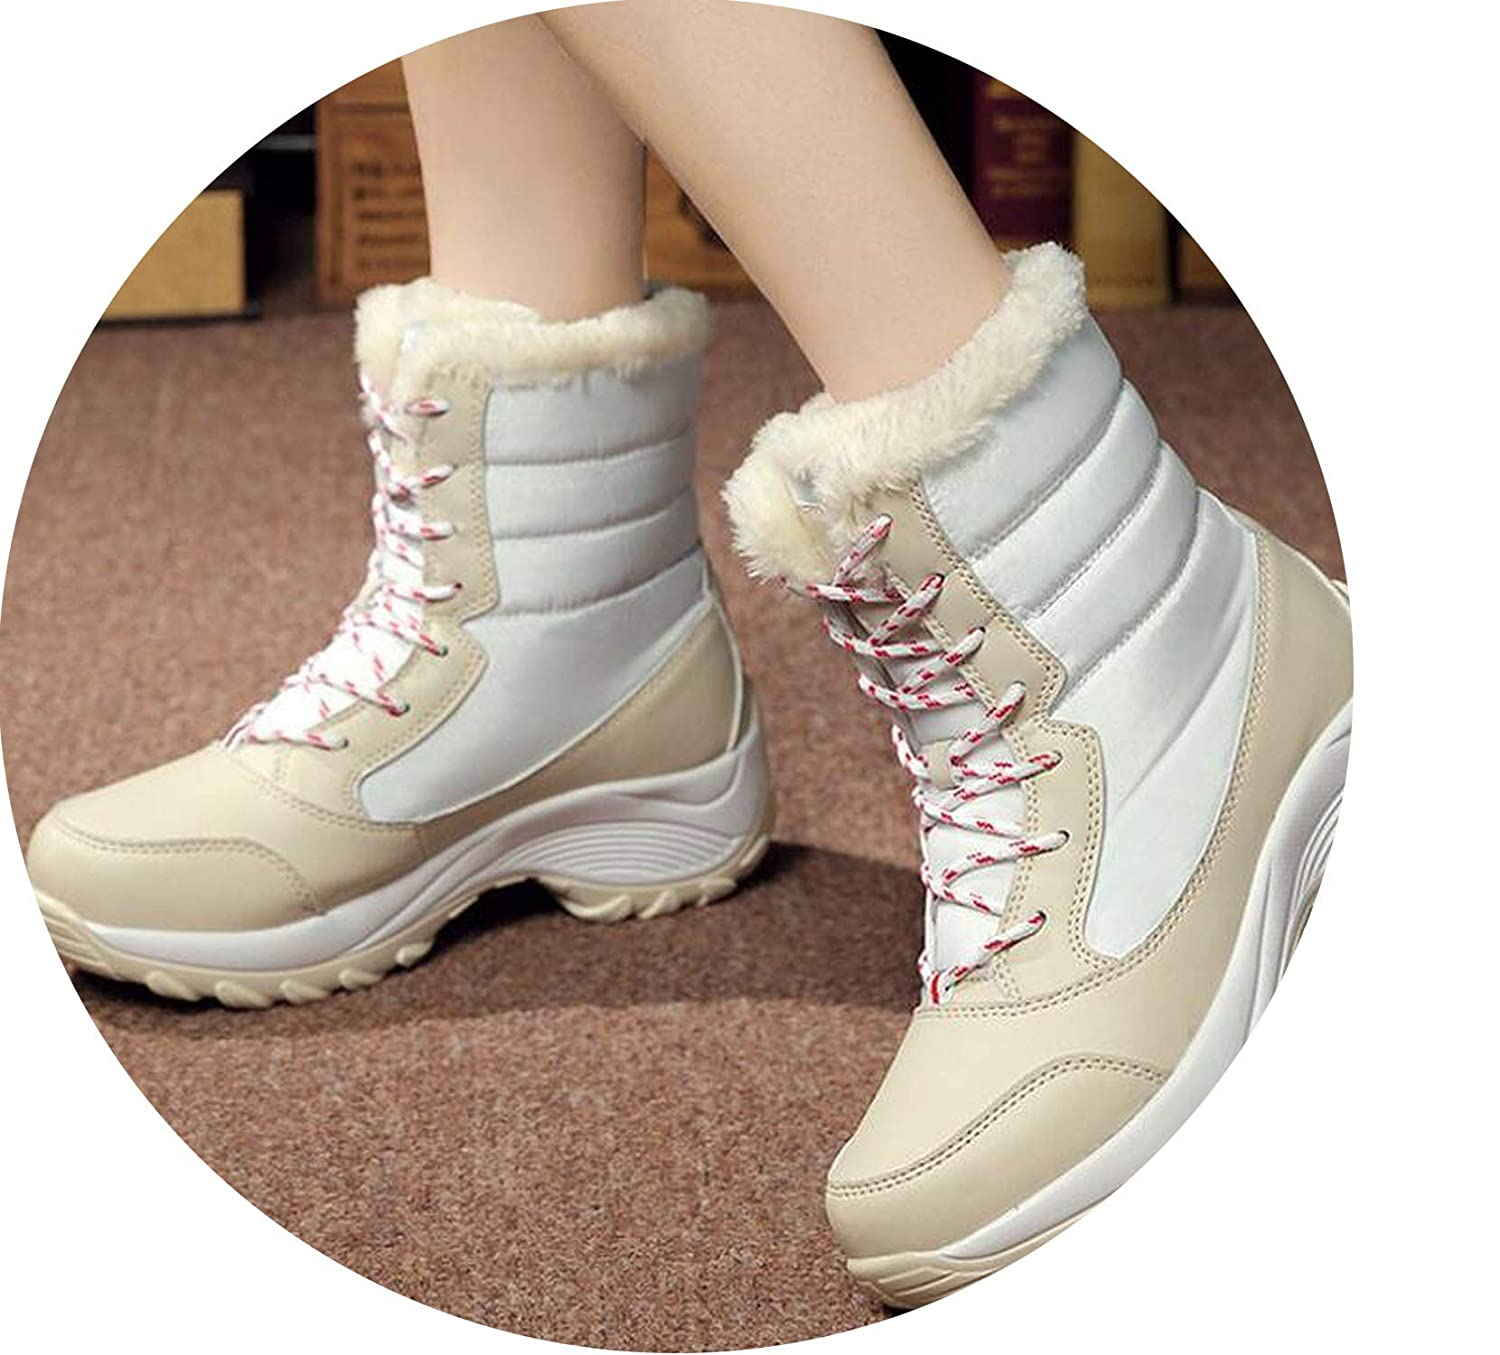 f55b8a0ee51 Amazon.com | Crazy-Shop Women Boots Non-Slip Waterproof Winter Ankle ...